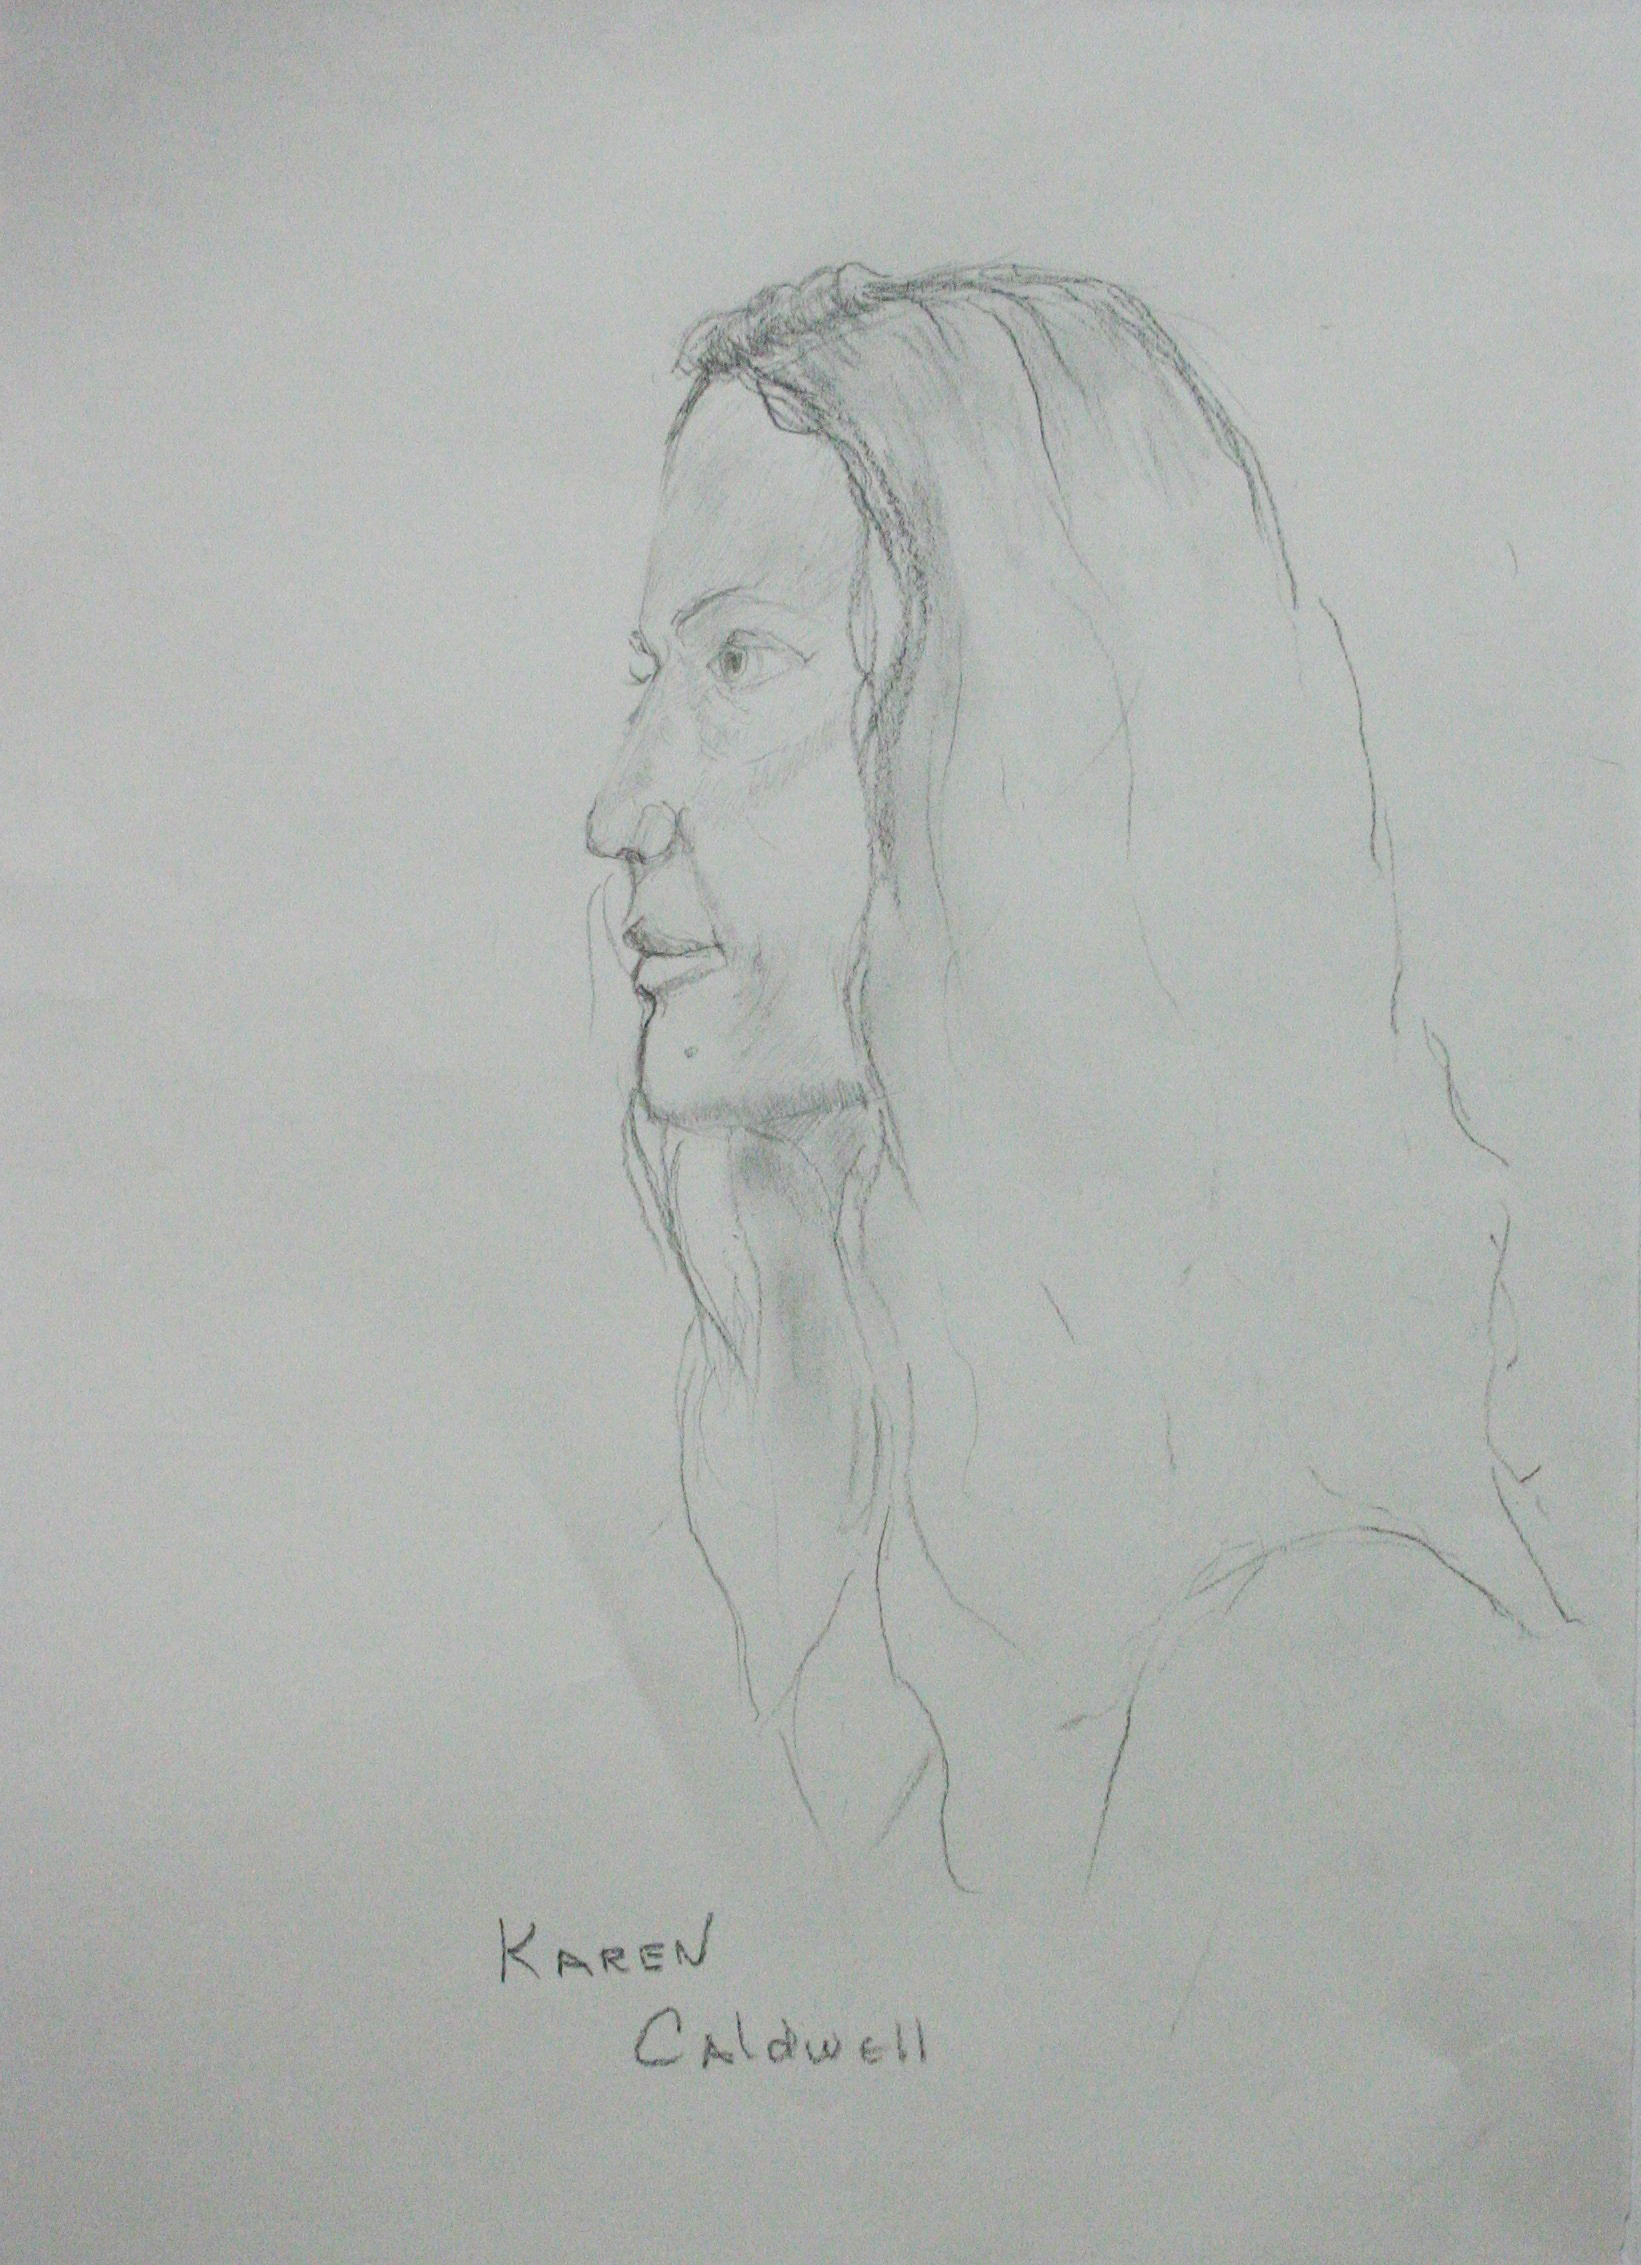 Karen Caldwell did this hour and a half drawing.